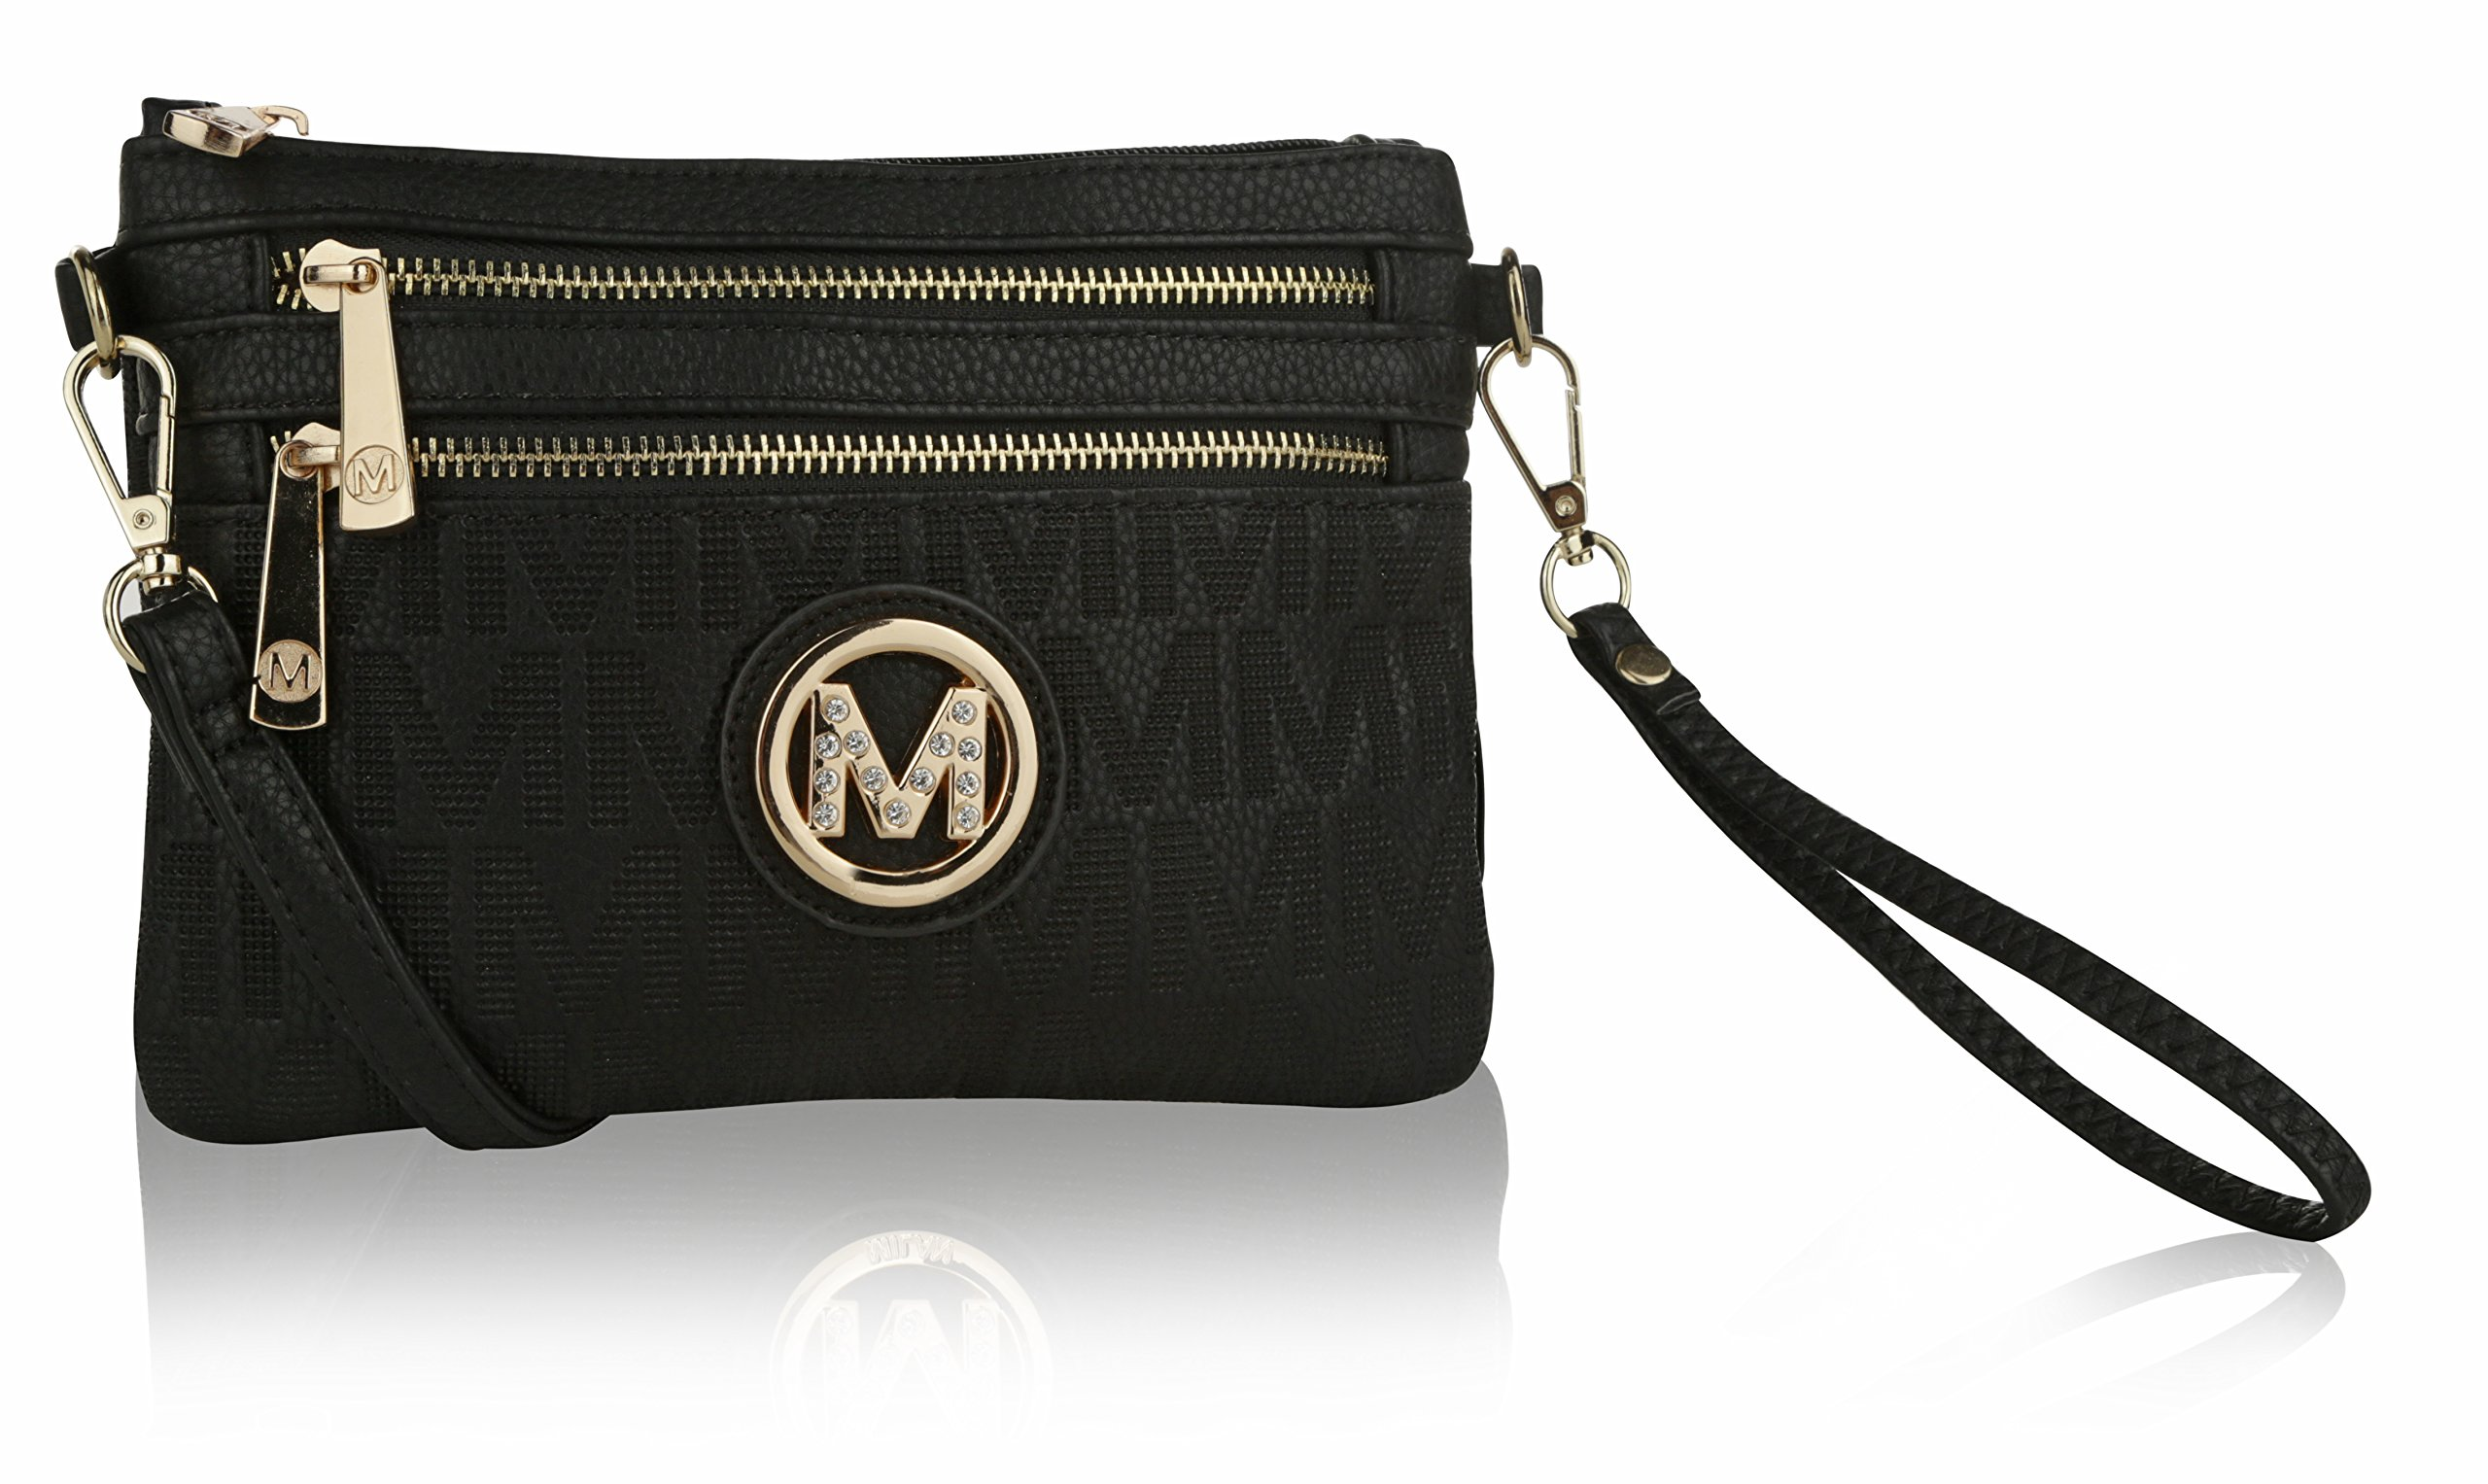 Wristlet | 2-in-1 Crossbody Bags for Women | MKF Collection Roonie Milan Signature Design